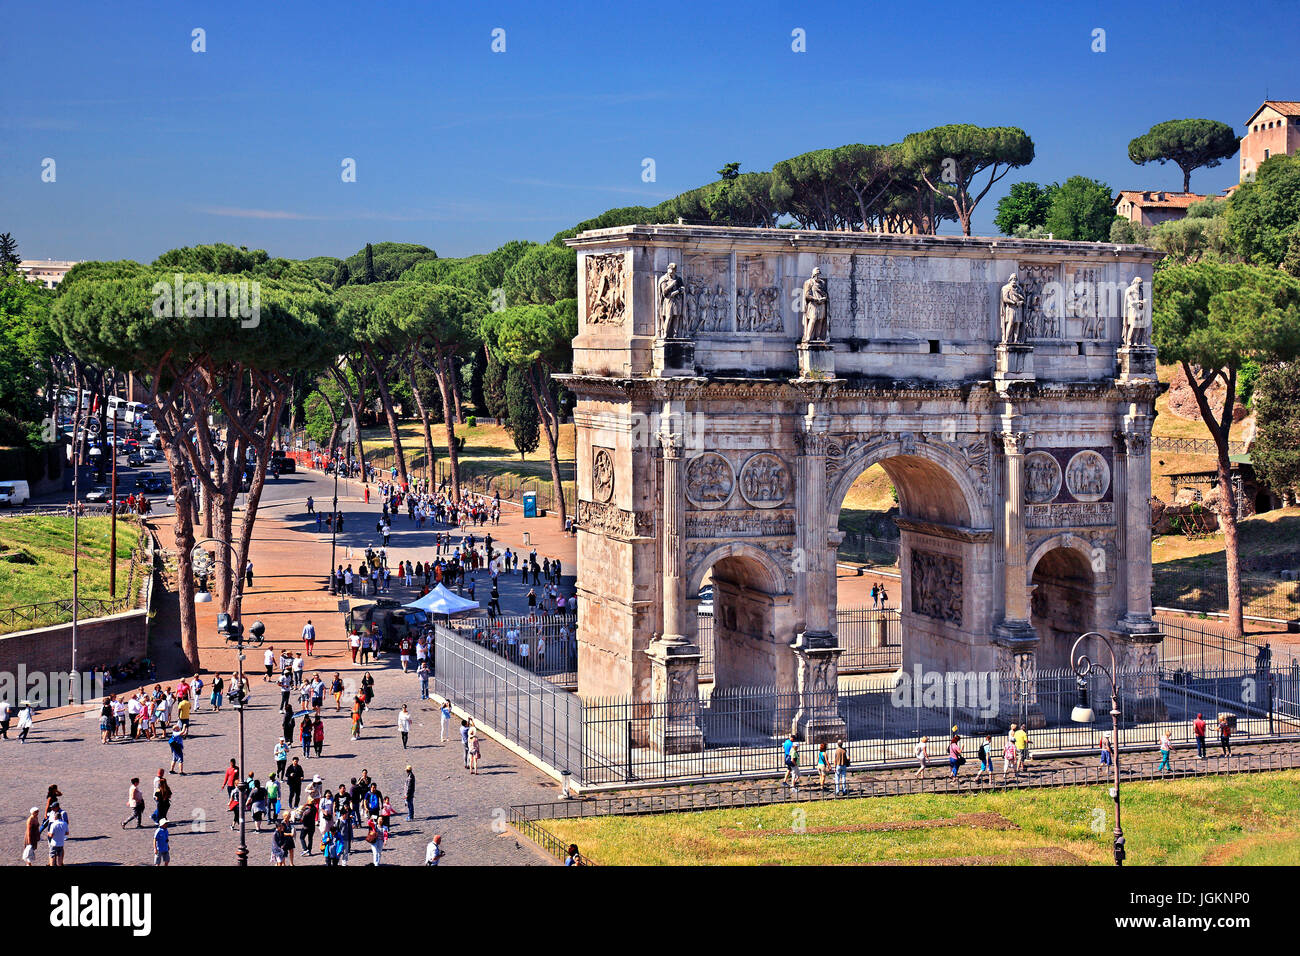 The Arch of Constantine  as seen from the Colosseum (Flavian Amphitheater), Rome, Italy - Stock Image